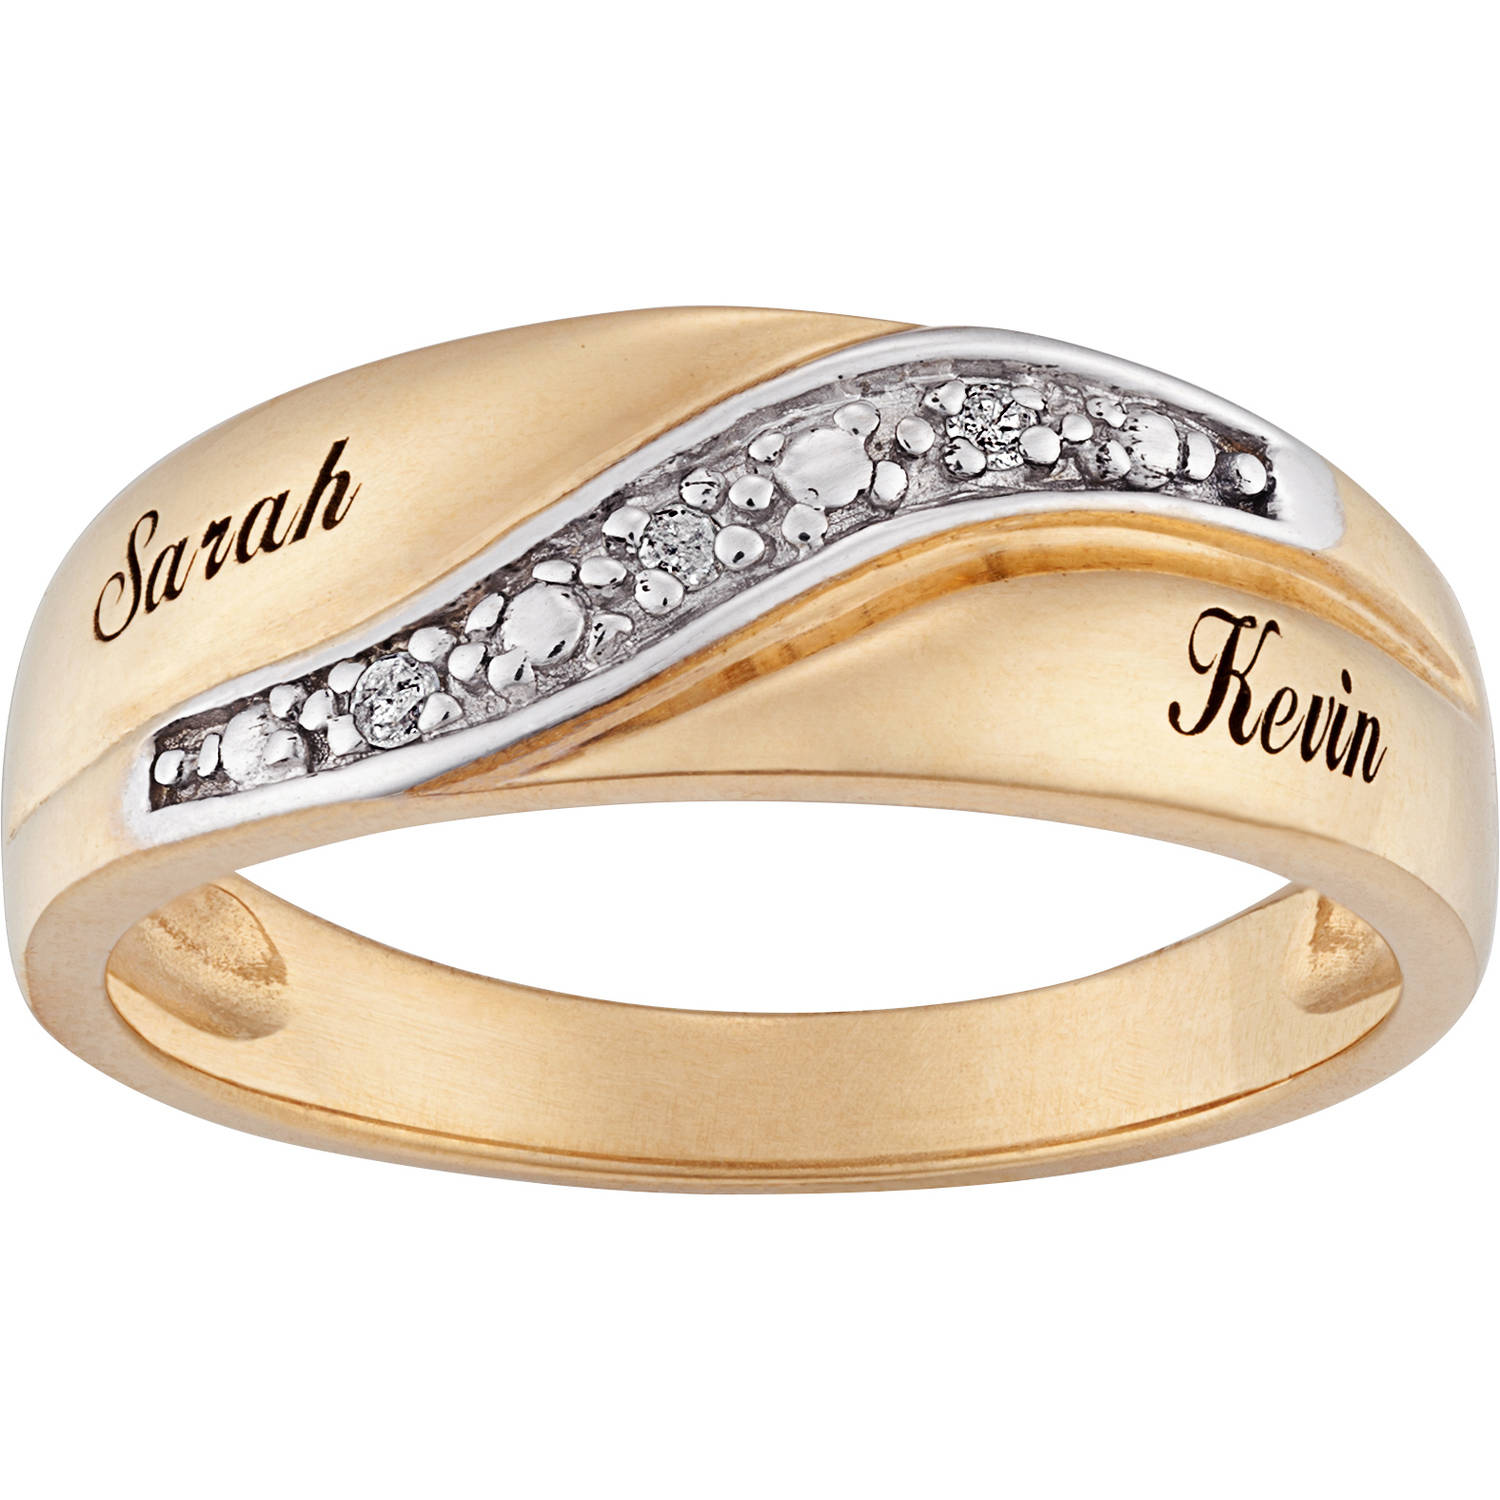 personalized s accent name wedding band 18kt